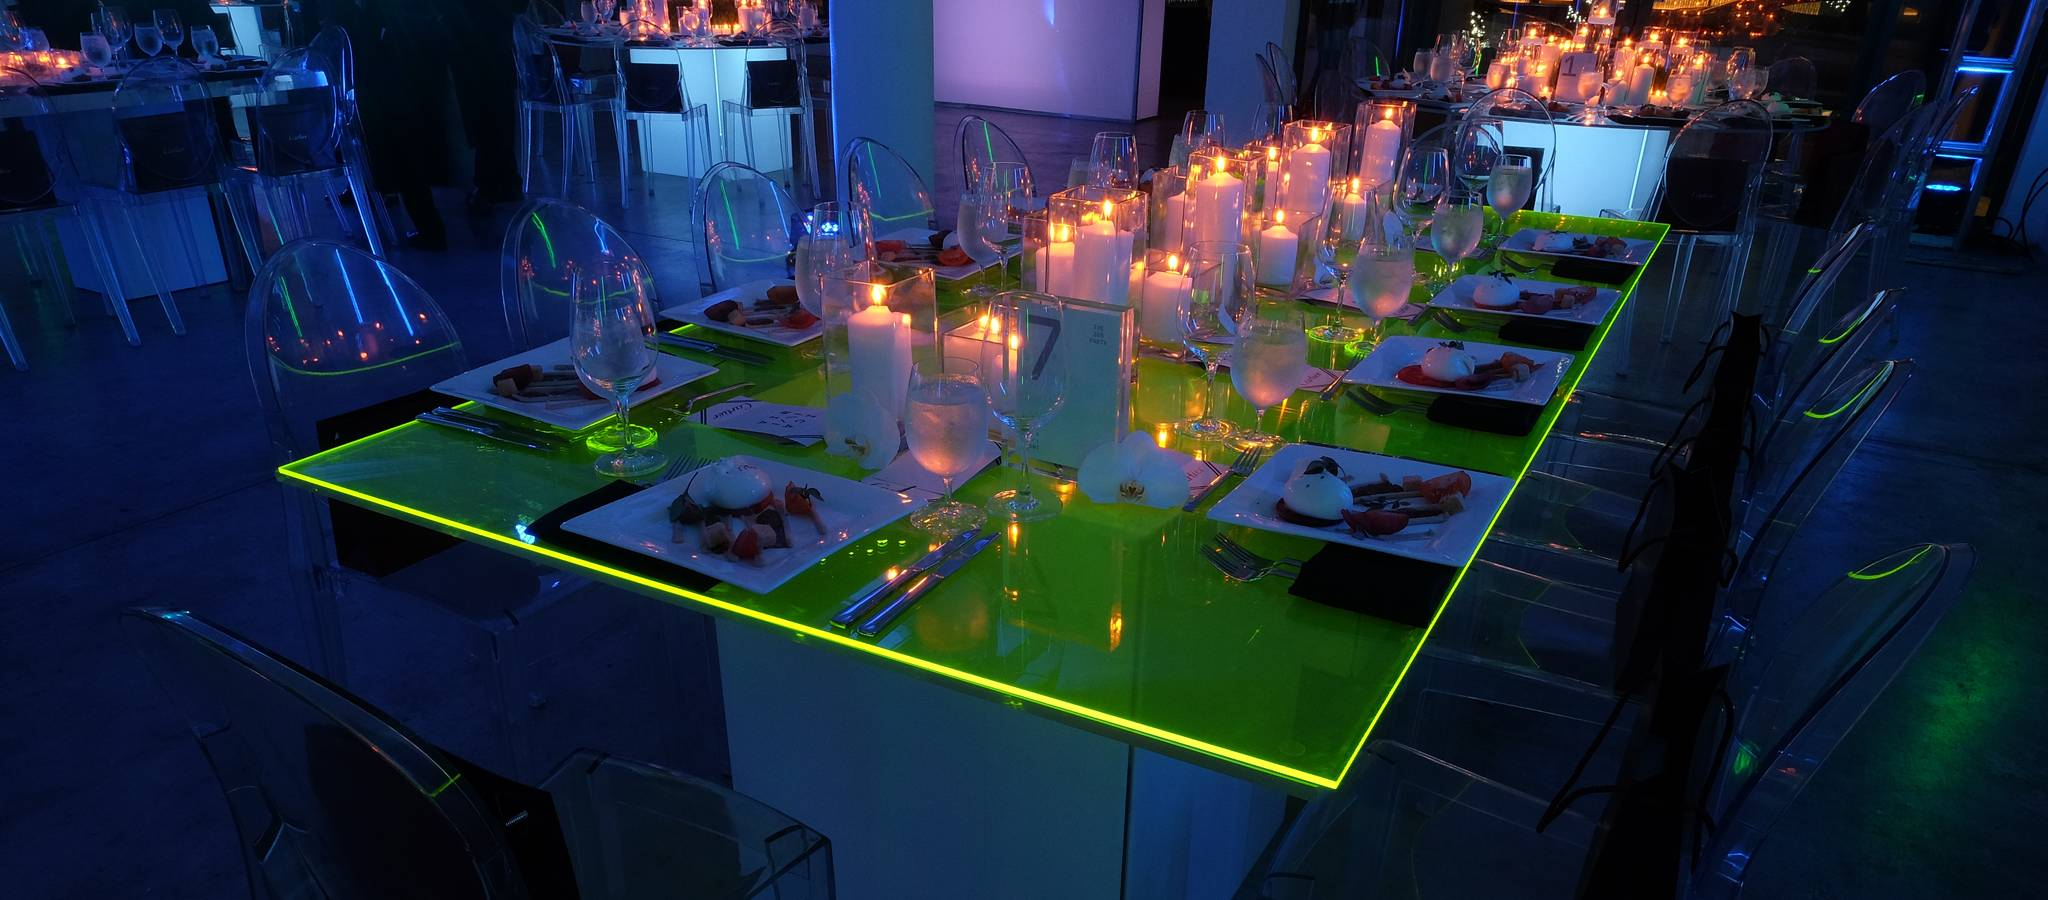 Neon Corporate Dinner Party